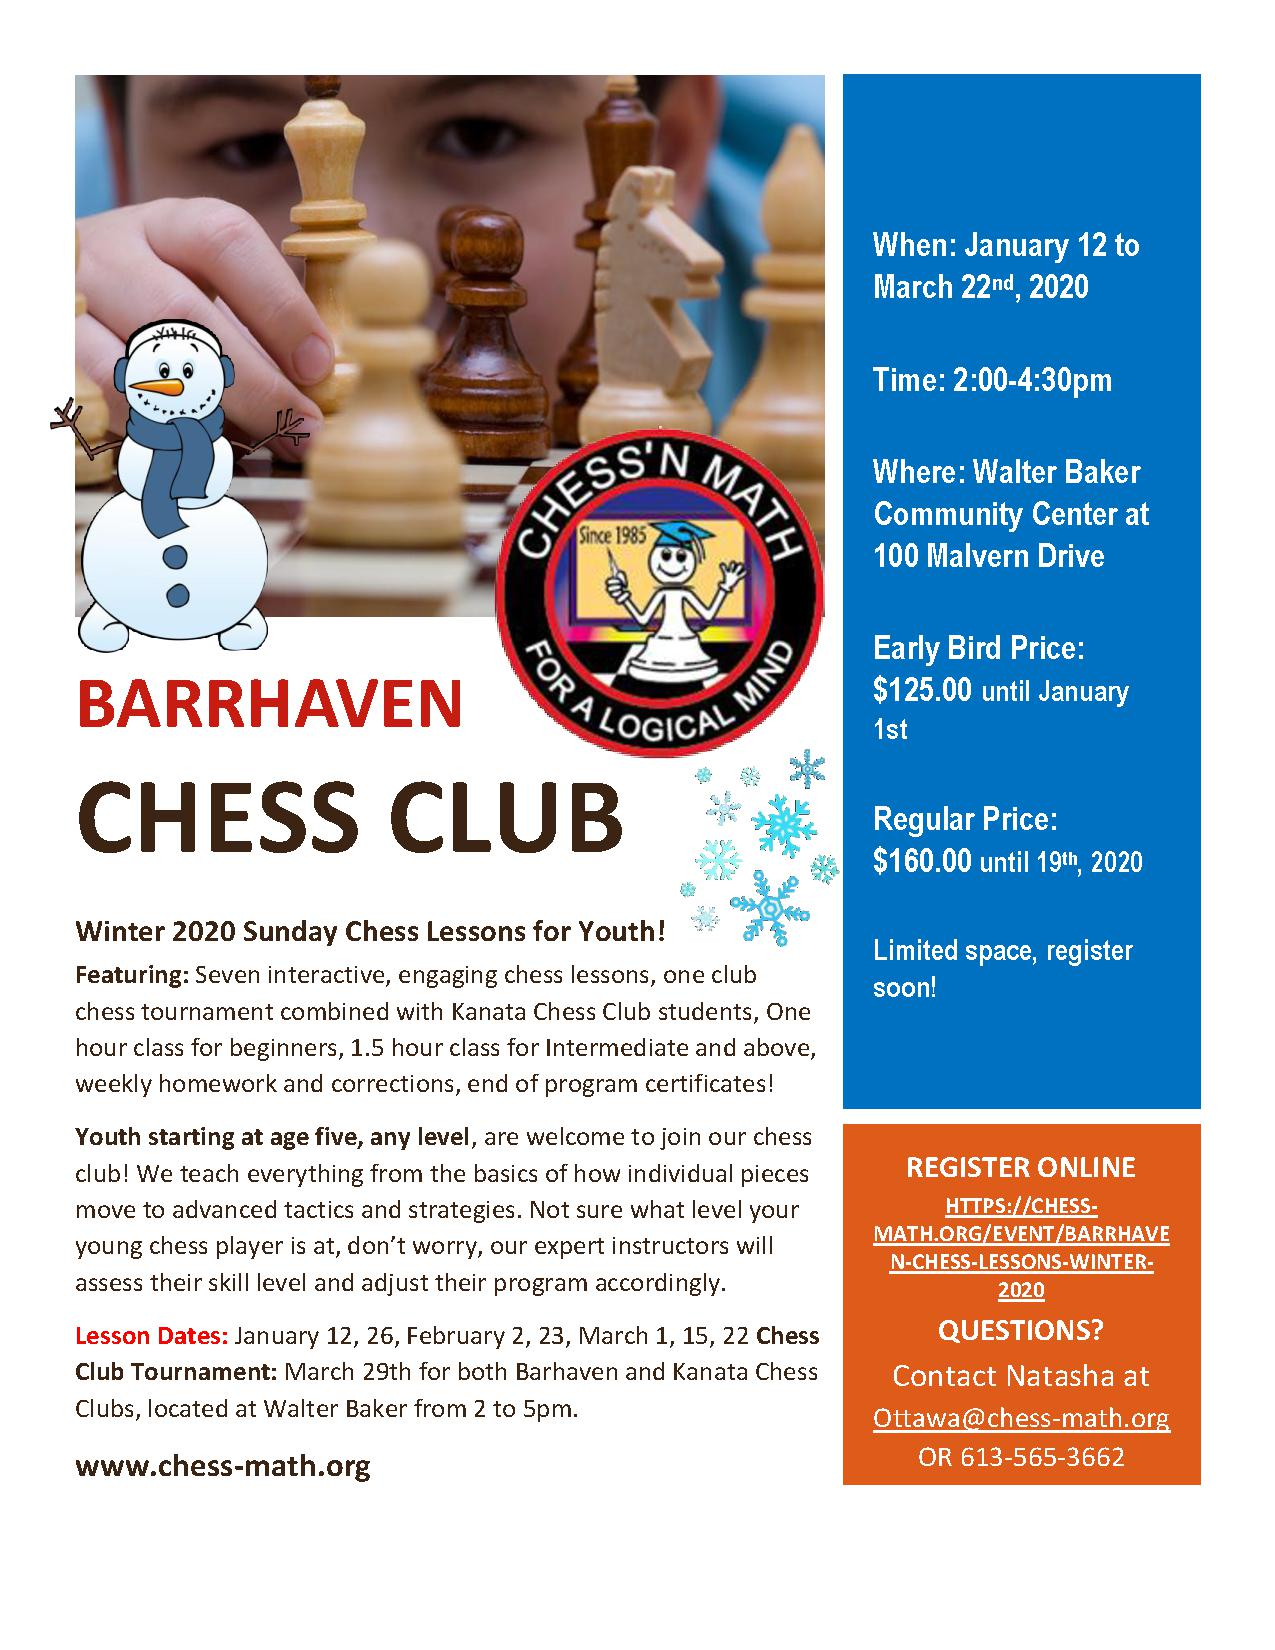 Barrhaven Sunday Chess Club Winter 2020